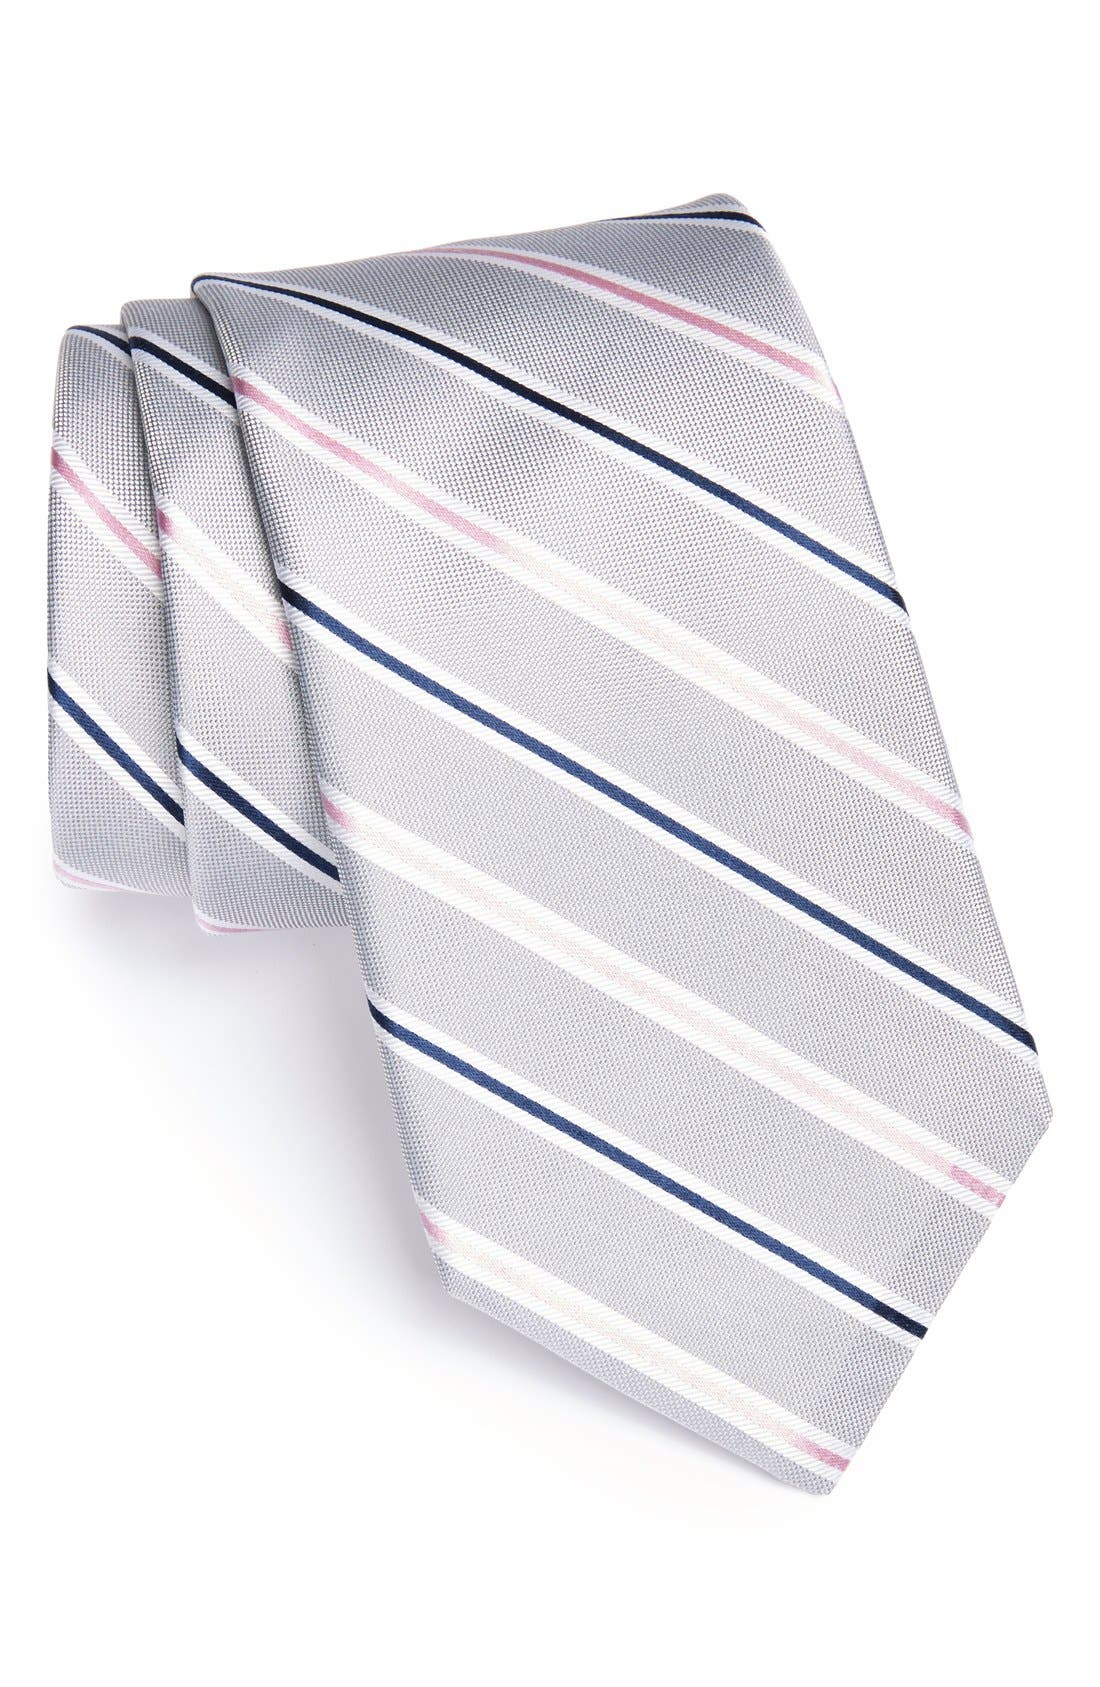 Main Image - Michael Kors Woven Silk Tie (X-Long)